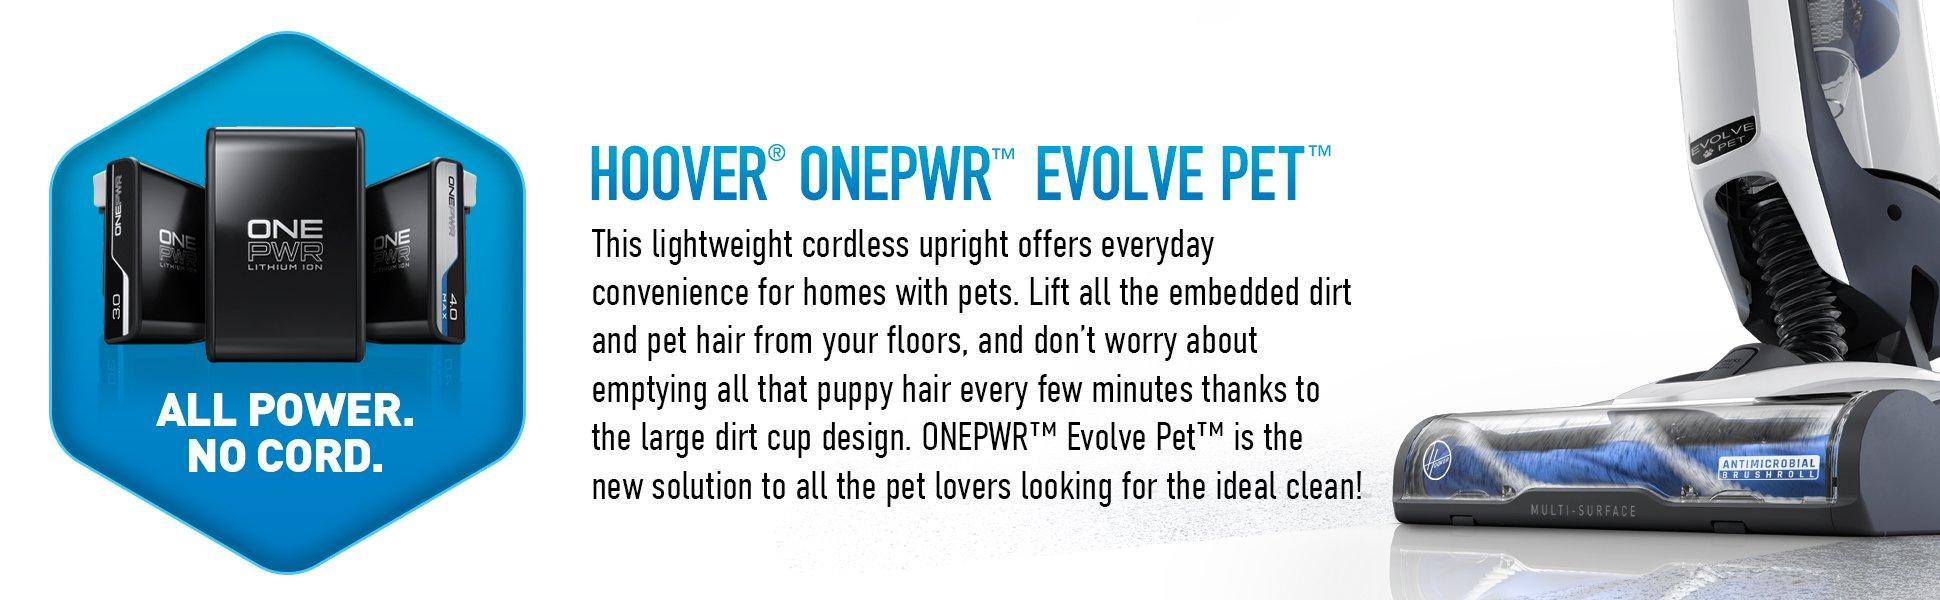 ONEPWR Evolve Pet